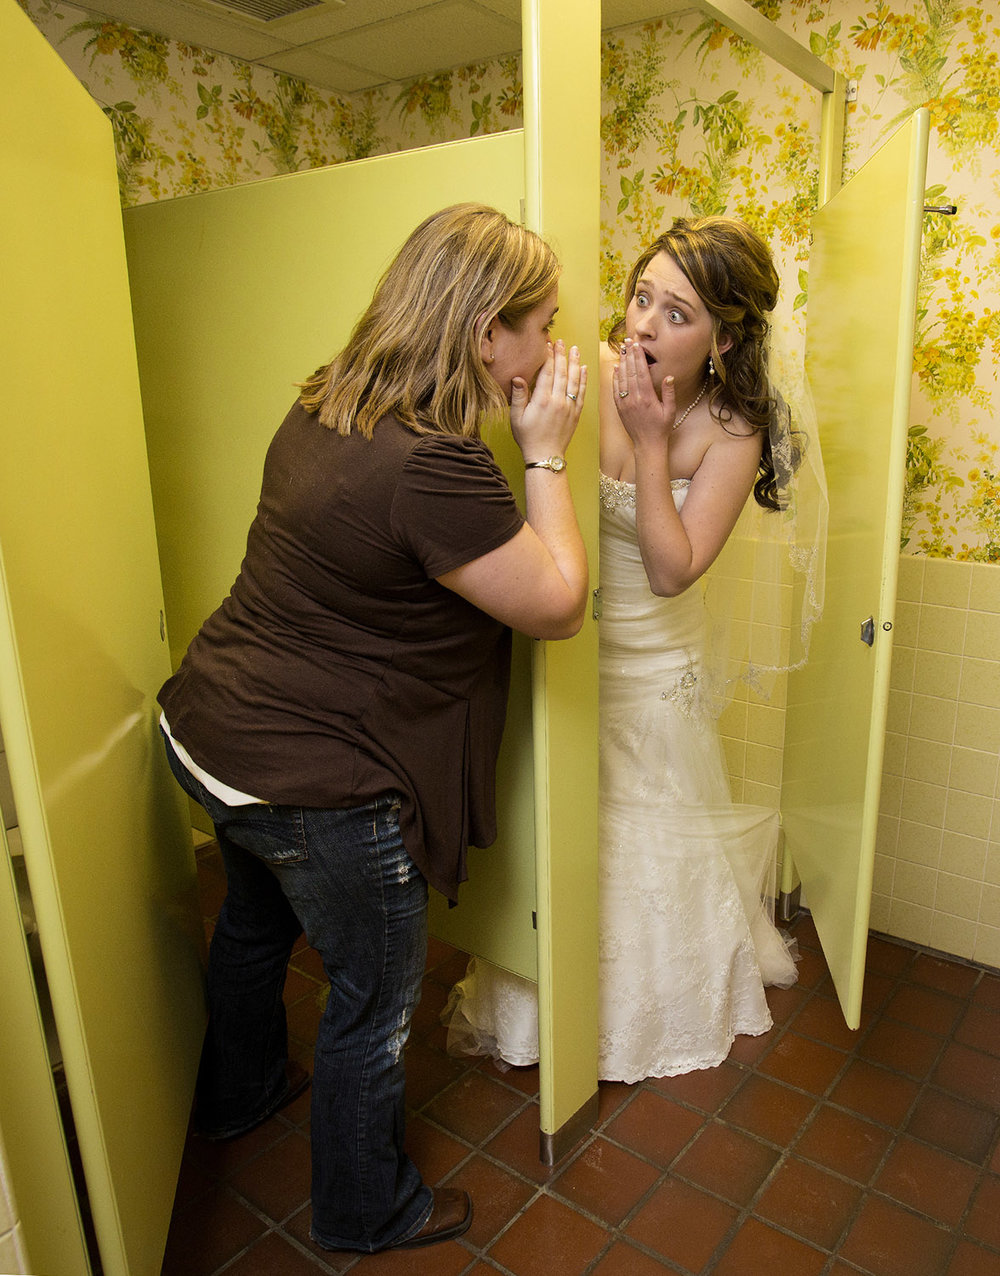 wedding_fun_0142.JPG